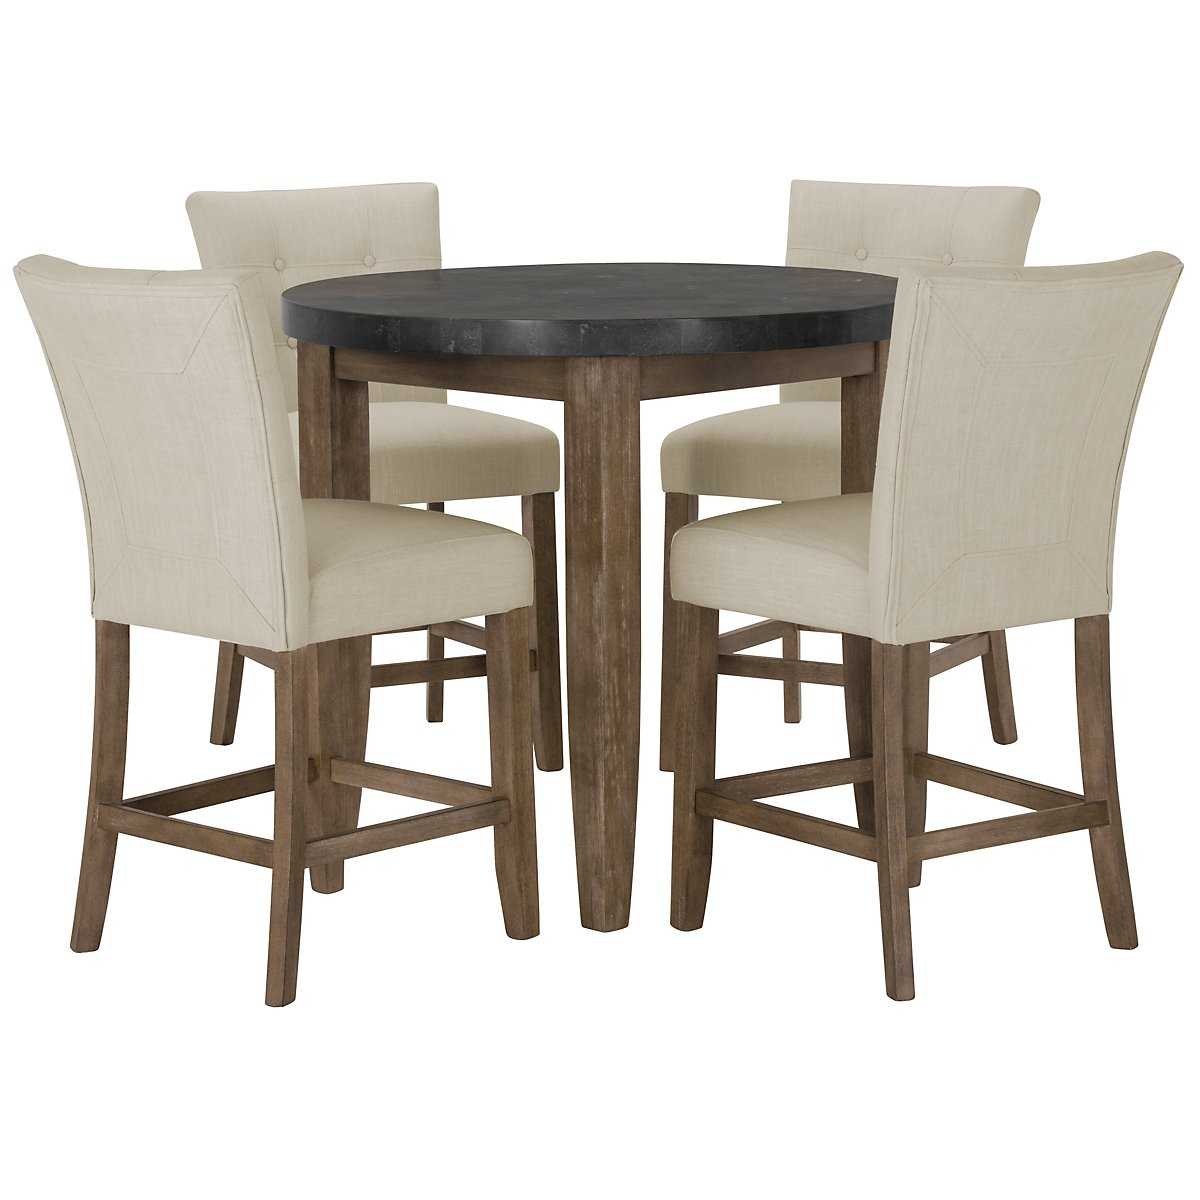 City Furniture: Emmett White Round High Dining Table & 2